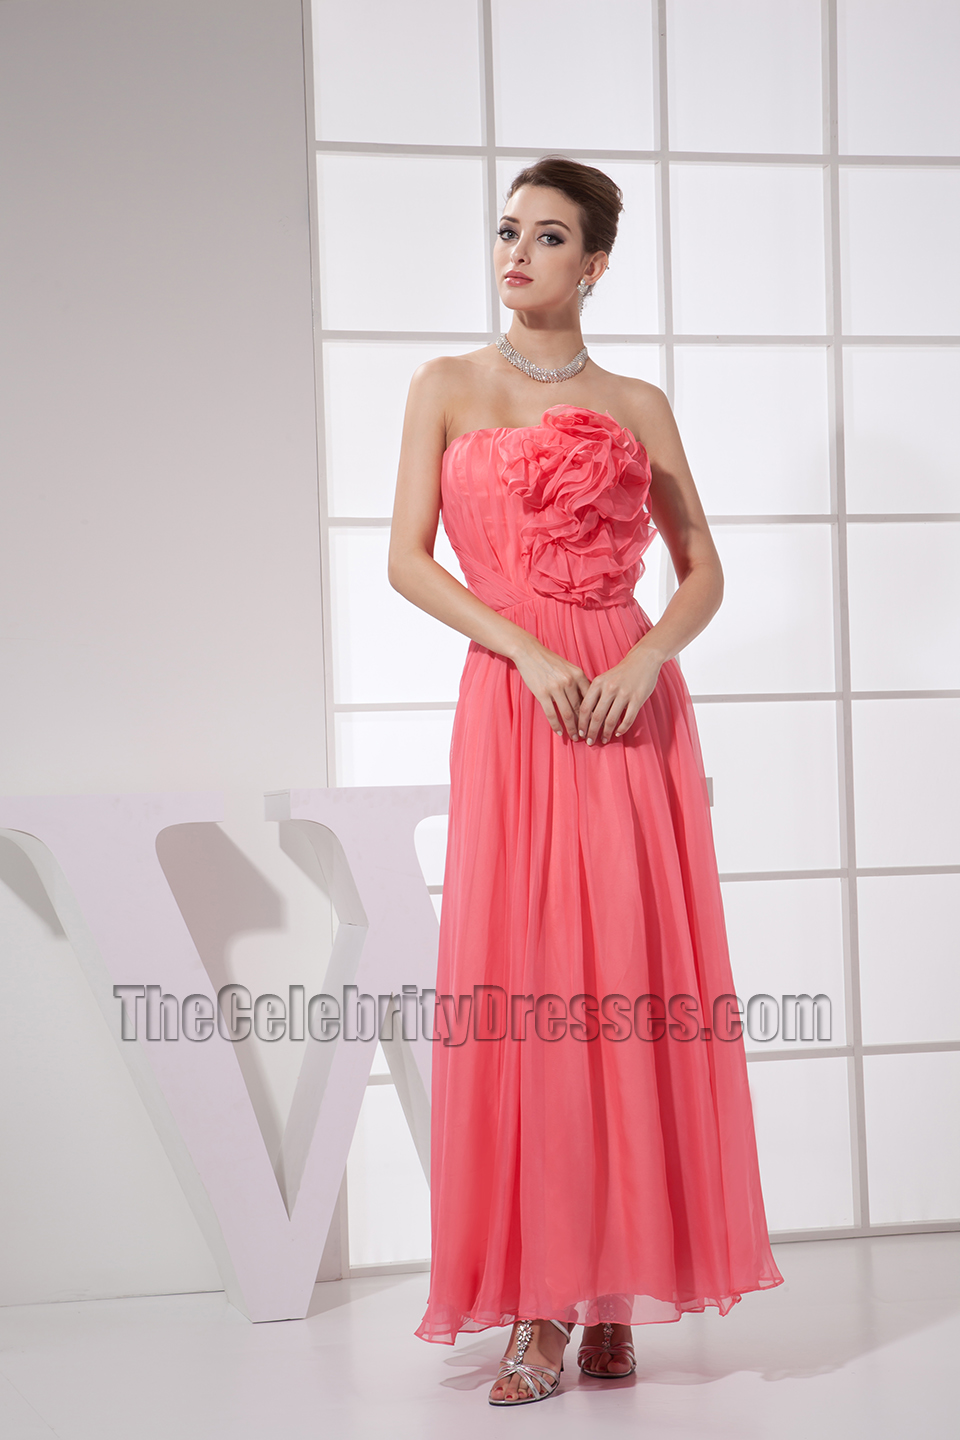 New style water melon strapless prom gown party dress new style water melon strapless prom gown party dress thecelebritydresses ombrellifo Image collections